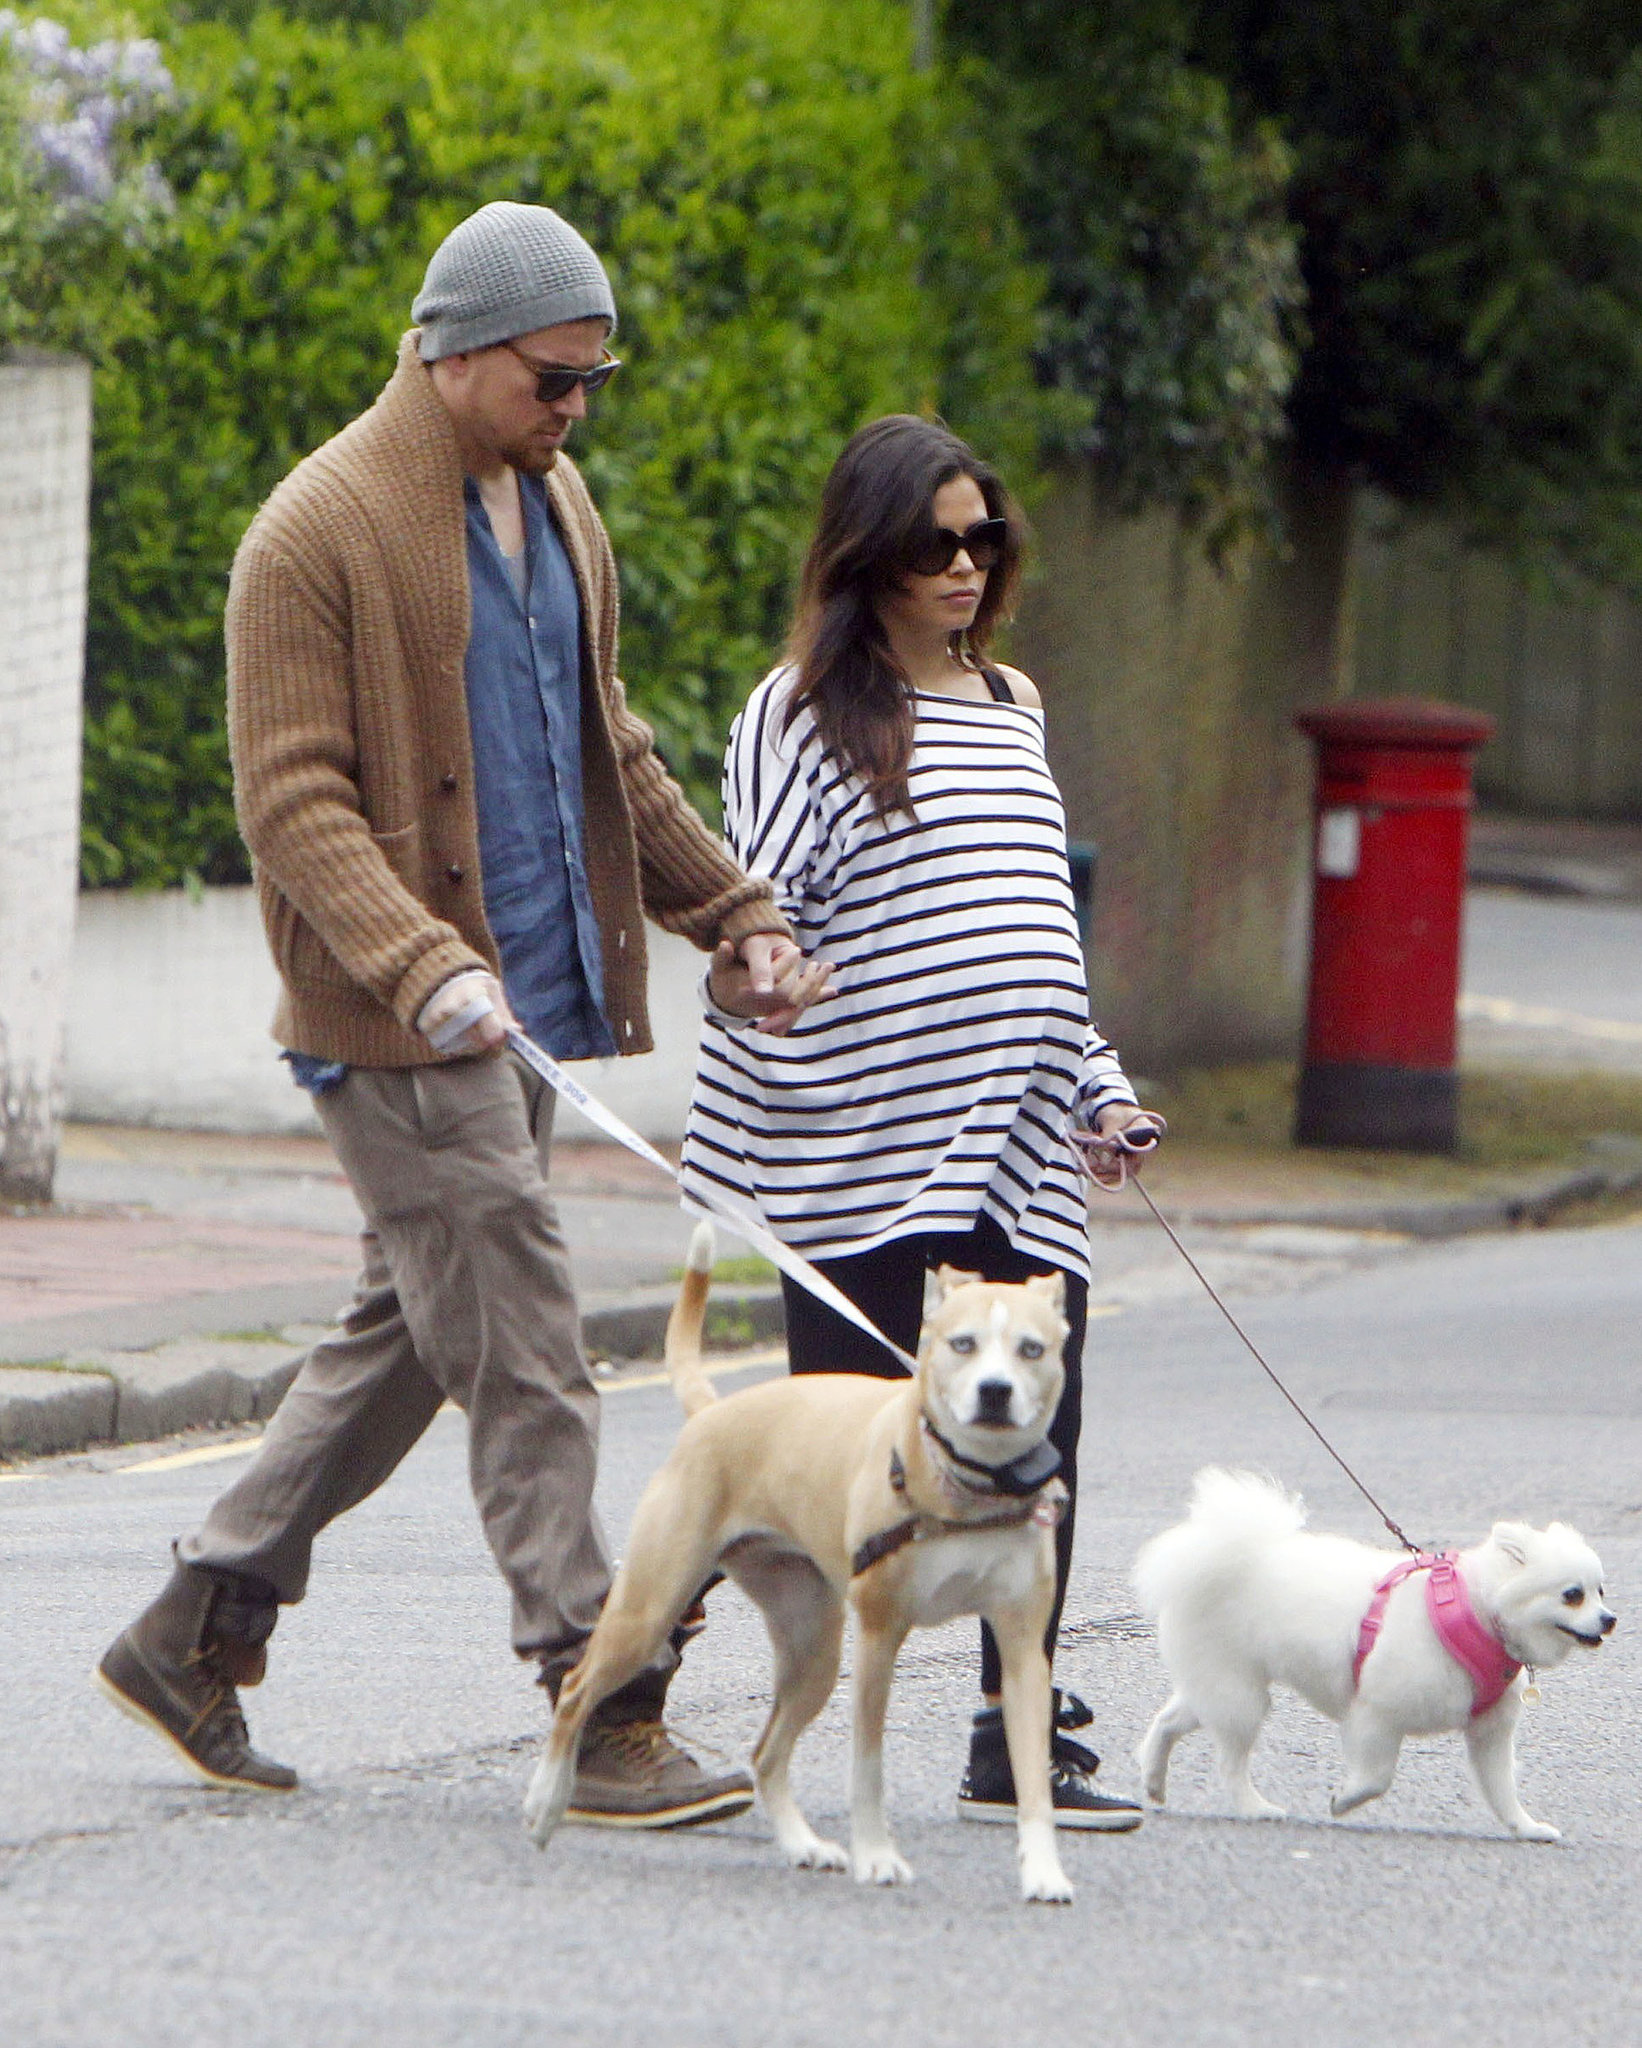 Channing and Jenna walked around London in May as they awaited the arrival of their first child.